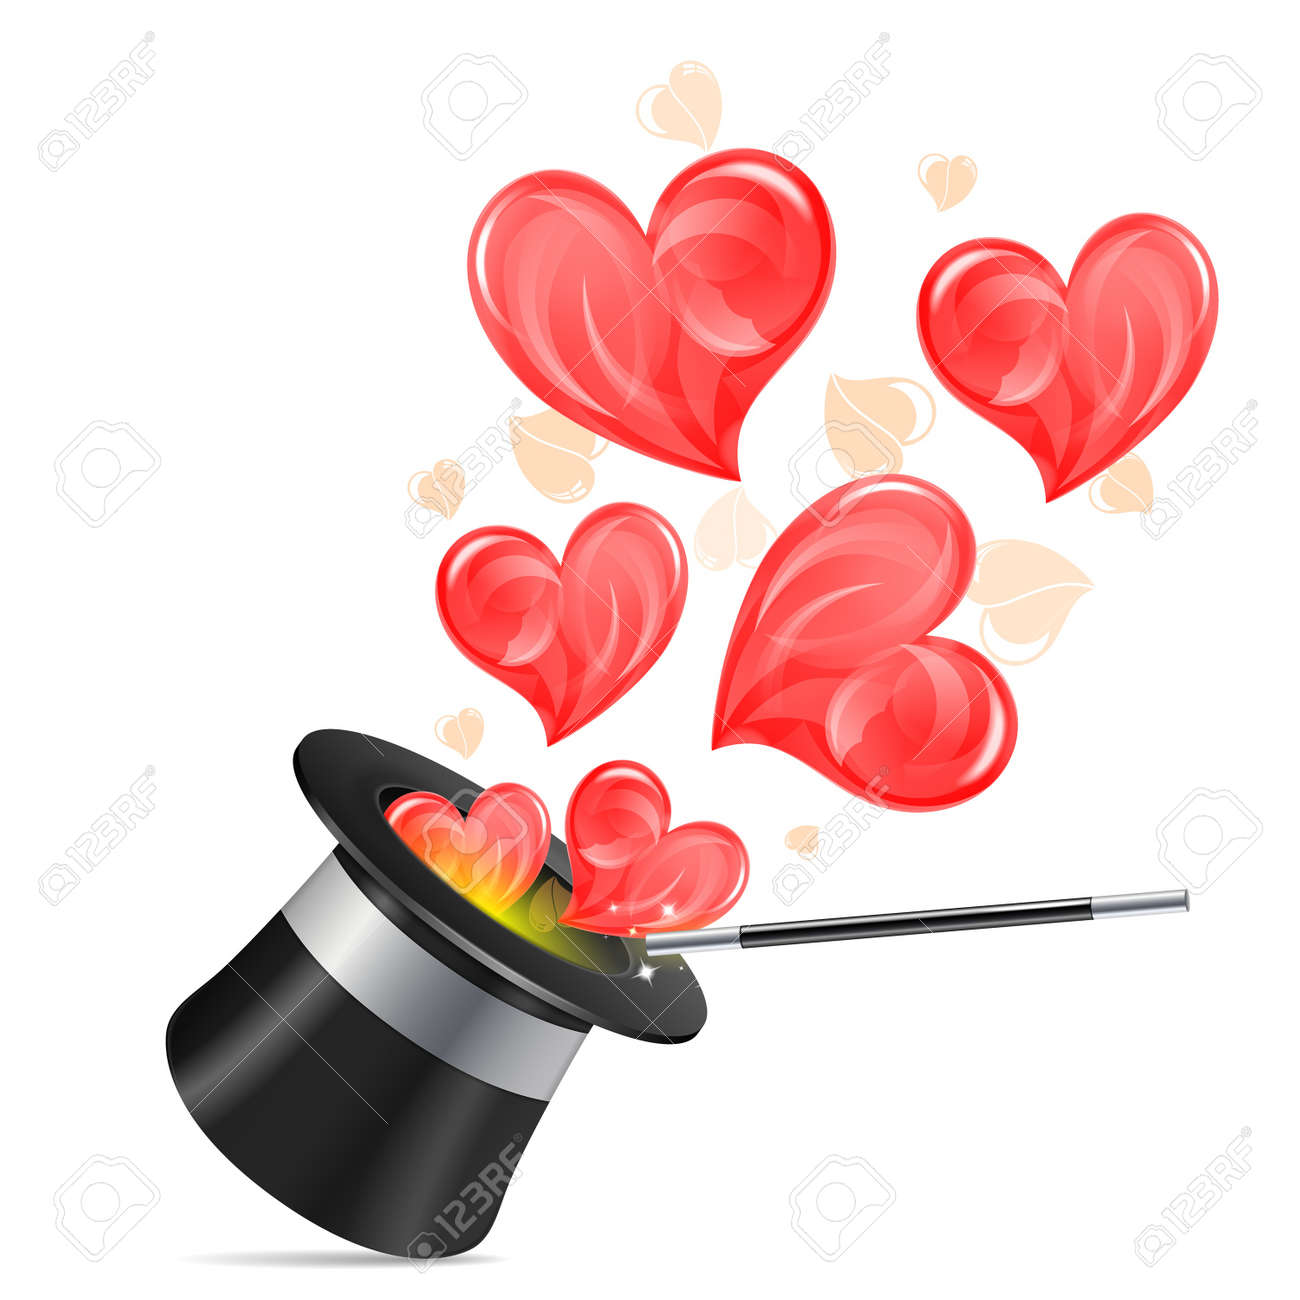 Magician Hat with Hearts and Wand, isolated on white background, vector illustration Stock Vector - 17510761